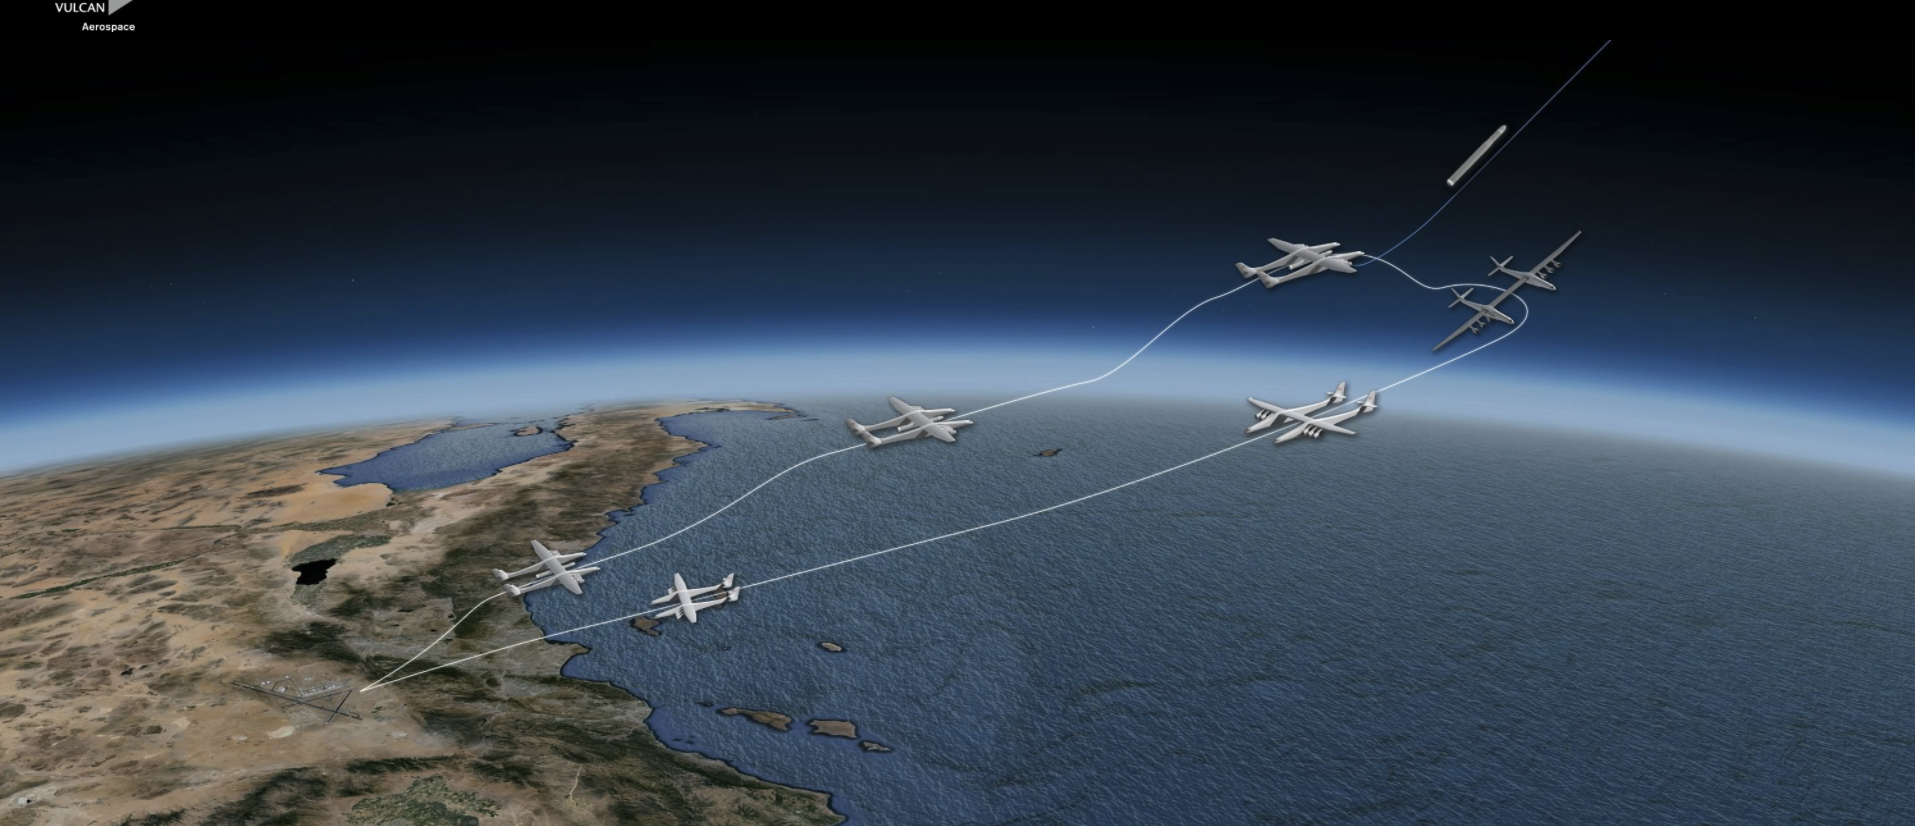 Diagram of the Stratolaunch's flight path.